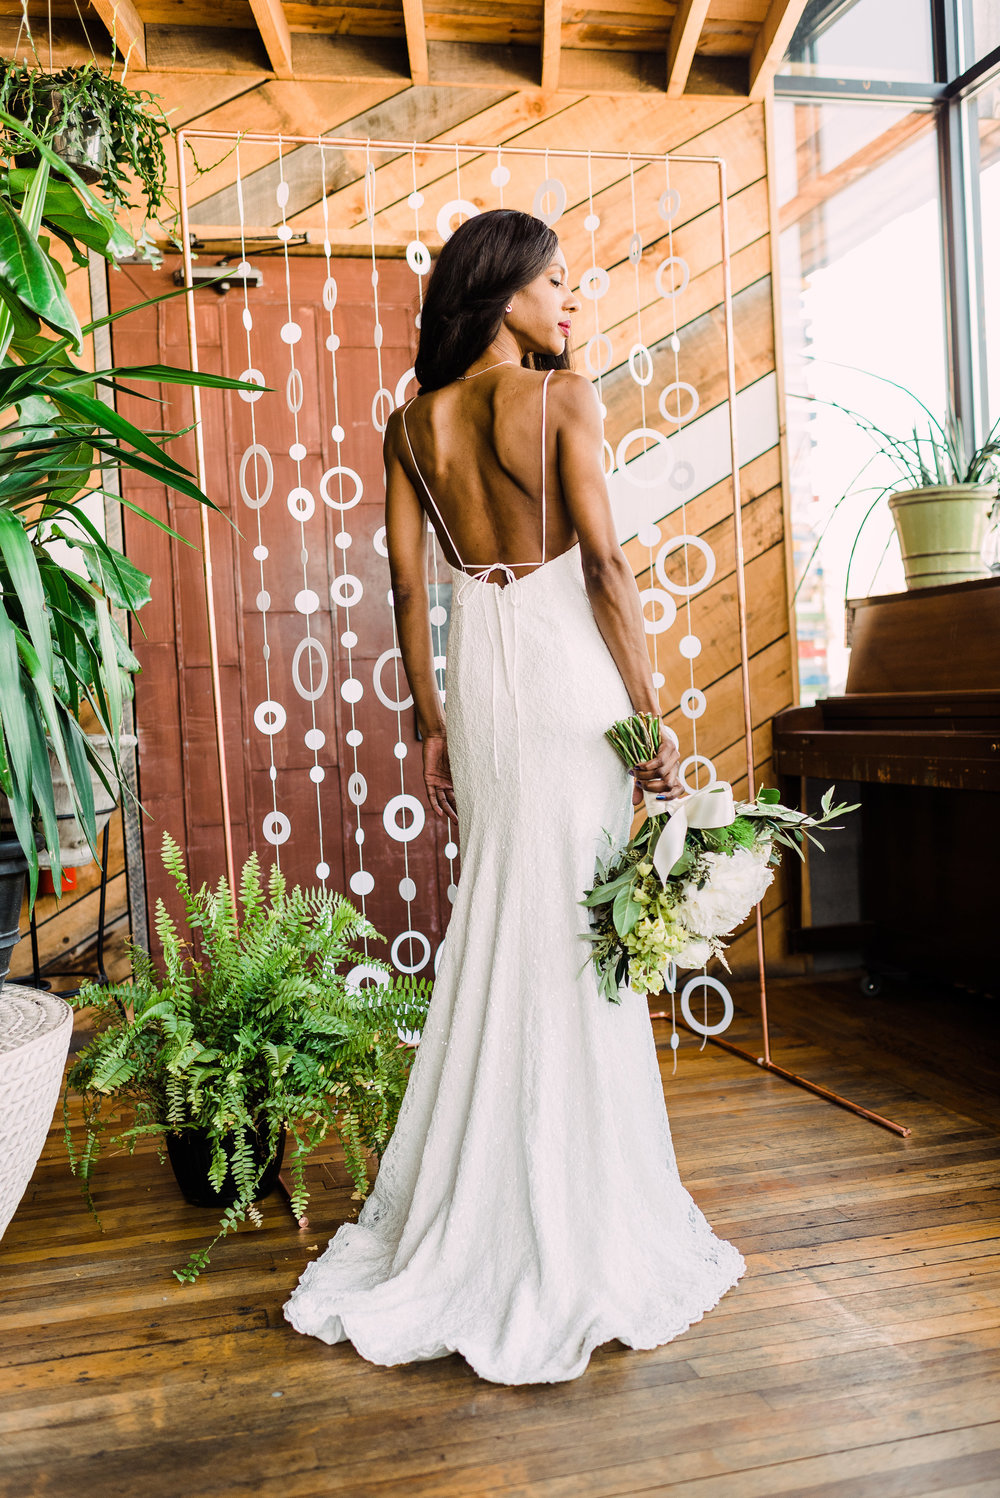 """Shanda's measurements are: Bust 34"""" / Waist 25"""" / Hip 36"""" 